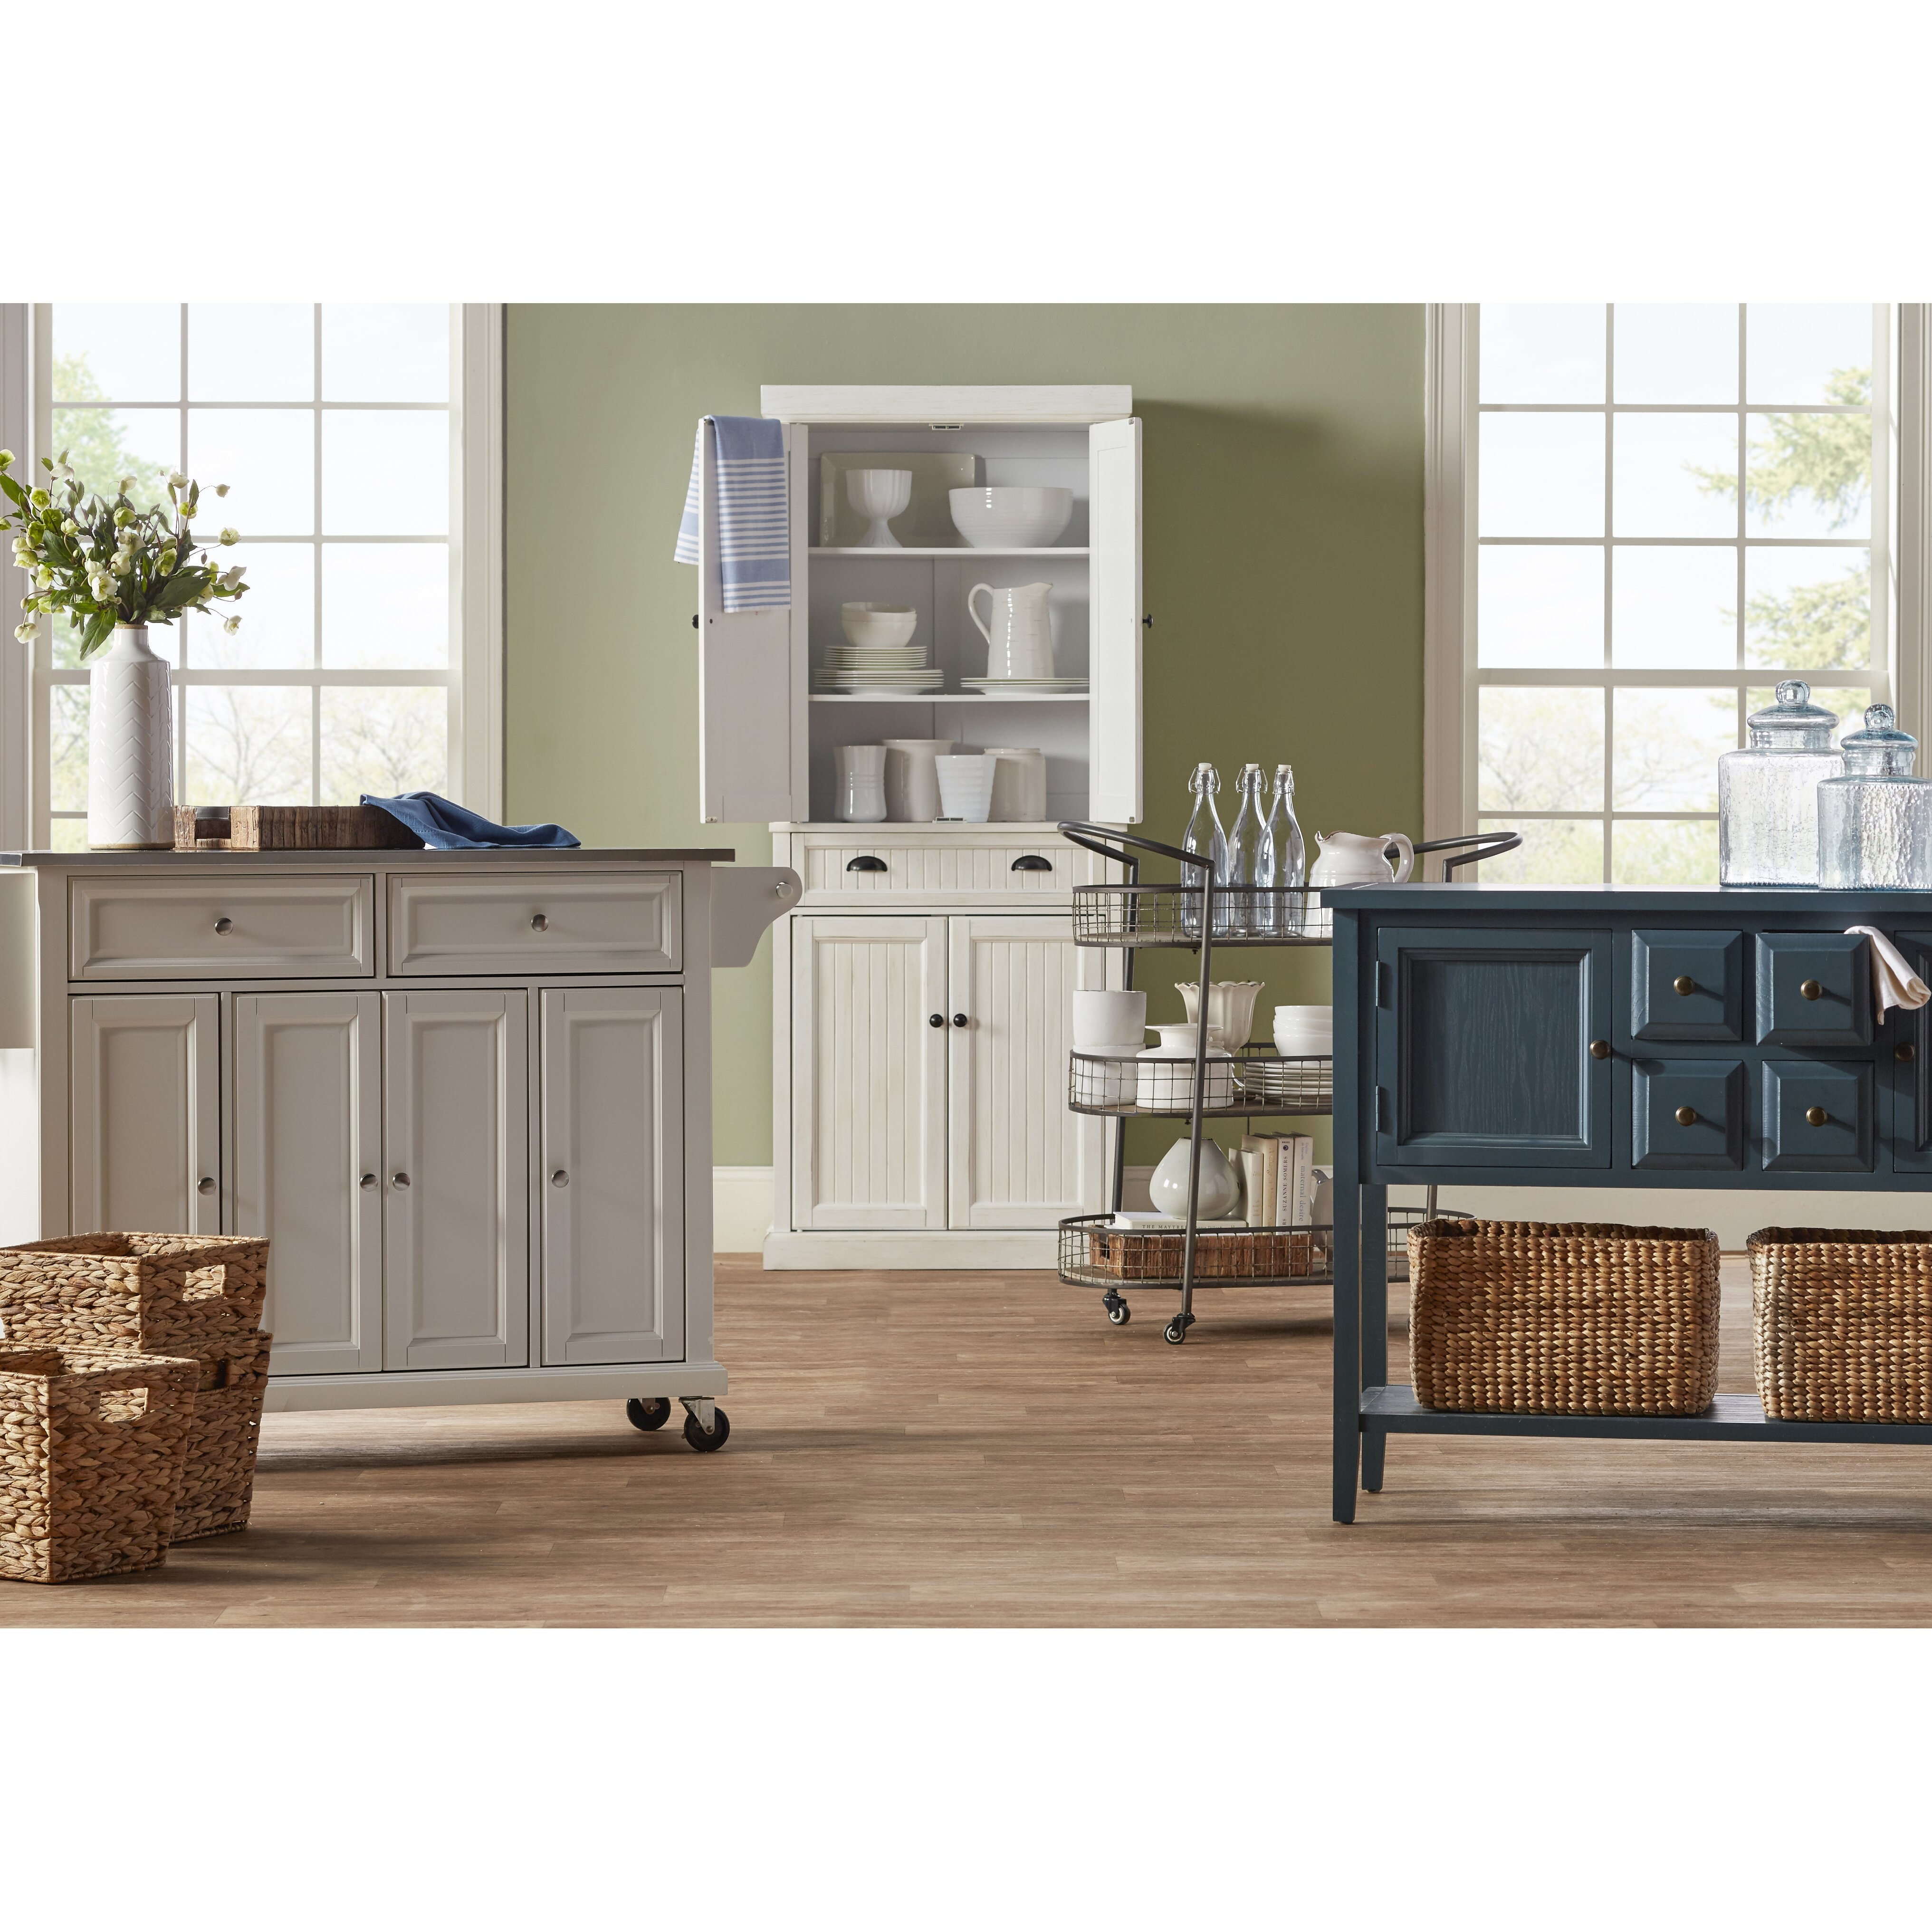 Crosley Kitchen Island: Crosley LaFayette Kitchen Island With Stainless Steel Top